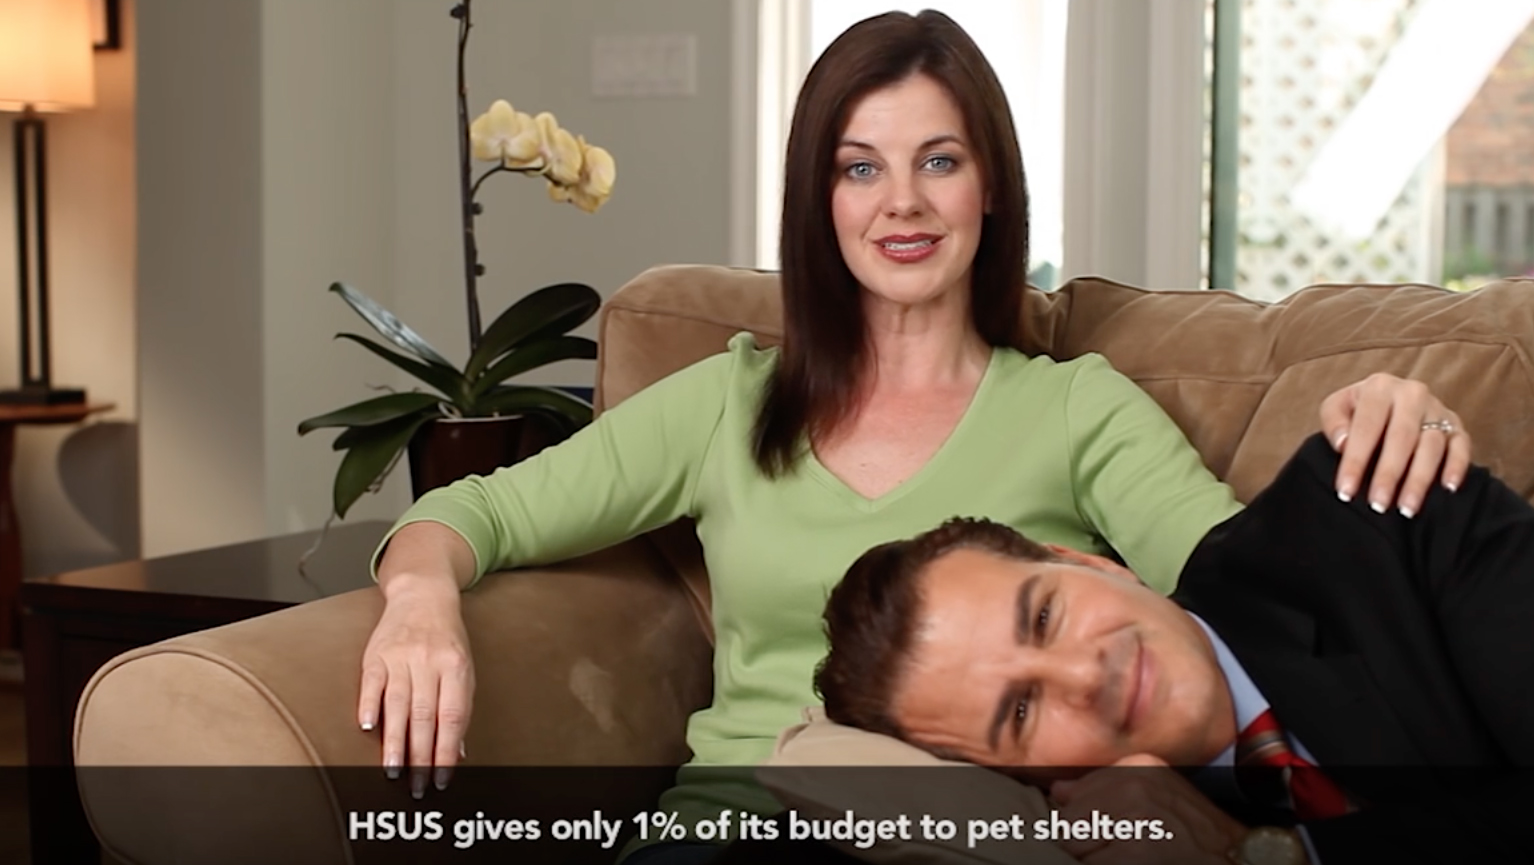 Super Bowl Ad Exposes HSUS Fraud